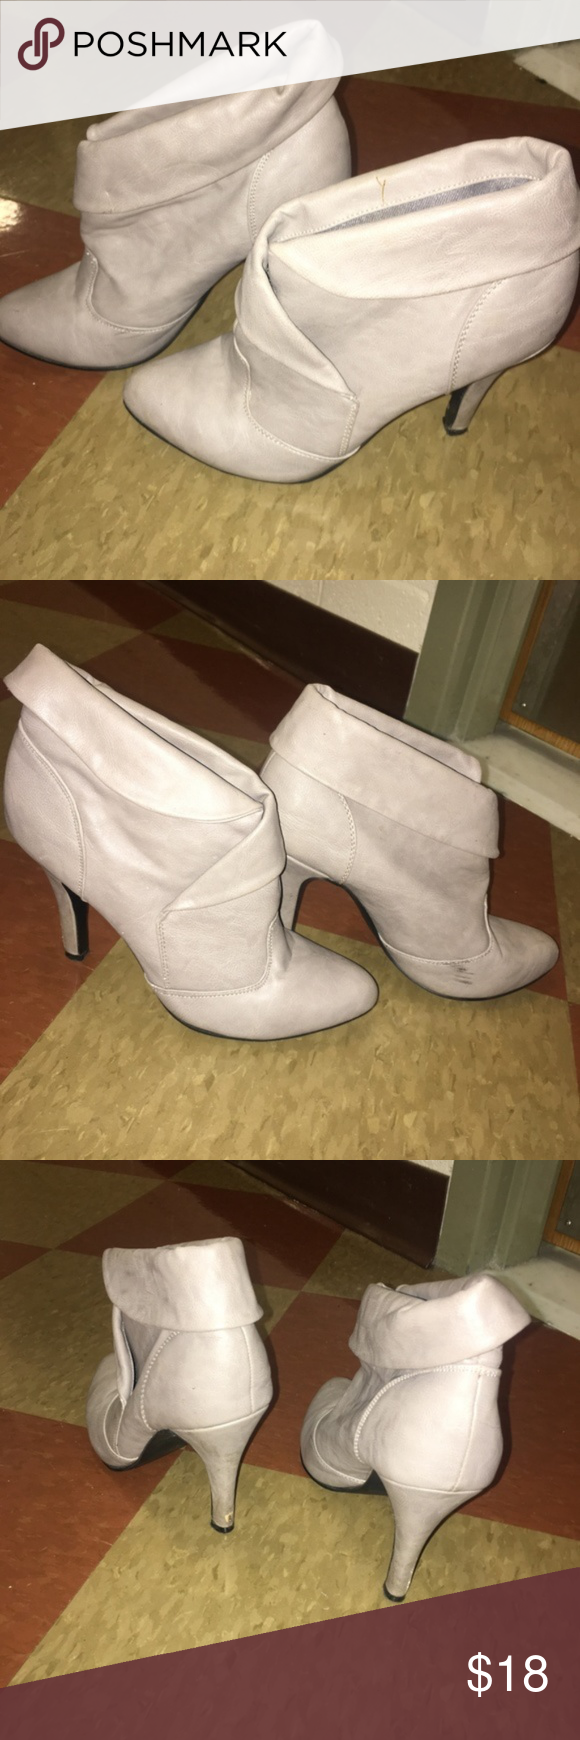 8ade75ed7c34 2  20 Forever 21 Taupe Heel Ankle Booties Small scuff on left shoe. Gray  color Very comfortable Size 8 4  heel Make me an offer! Bundle items with  red dots ...